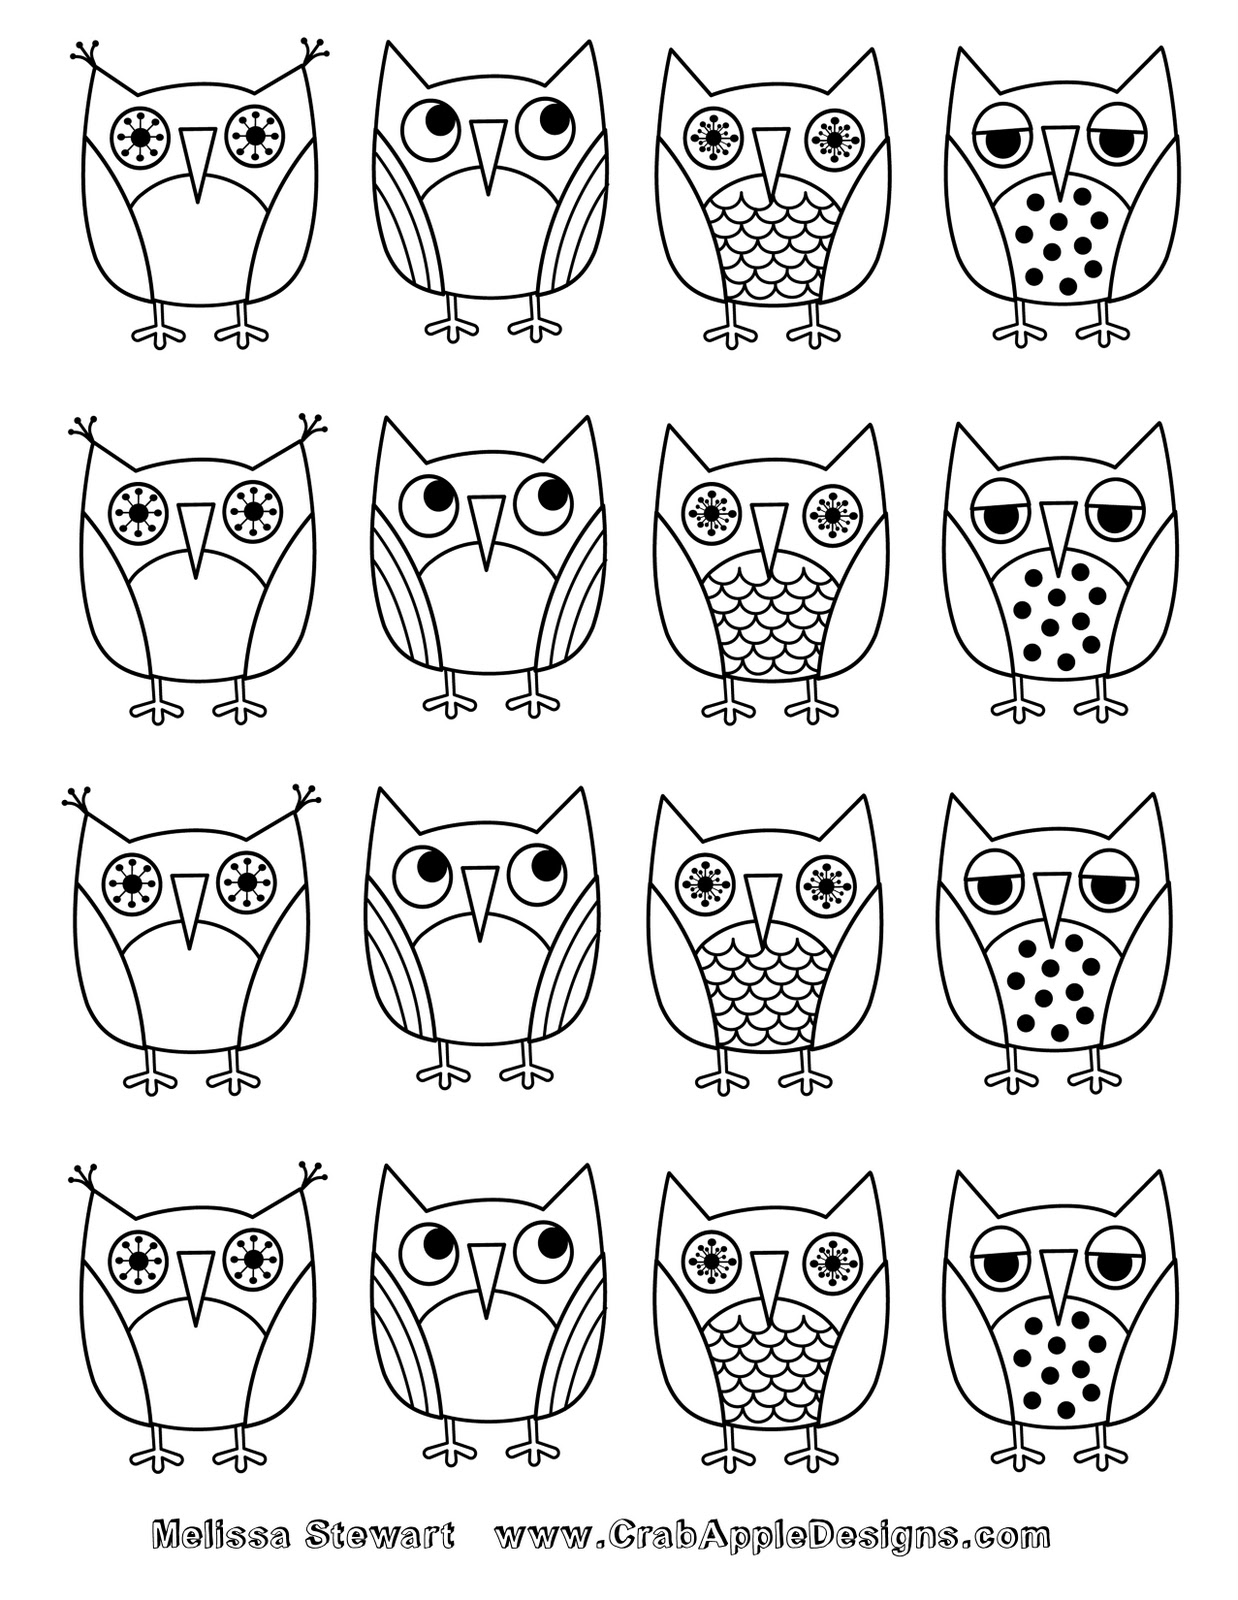 Coloriage Facile Hibou.Pin Dessiner Hibou Dessin De Facile Comment Les Hiboux On Hibou